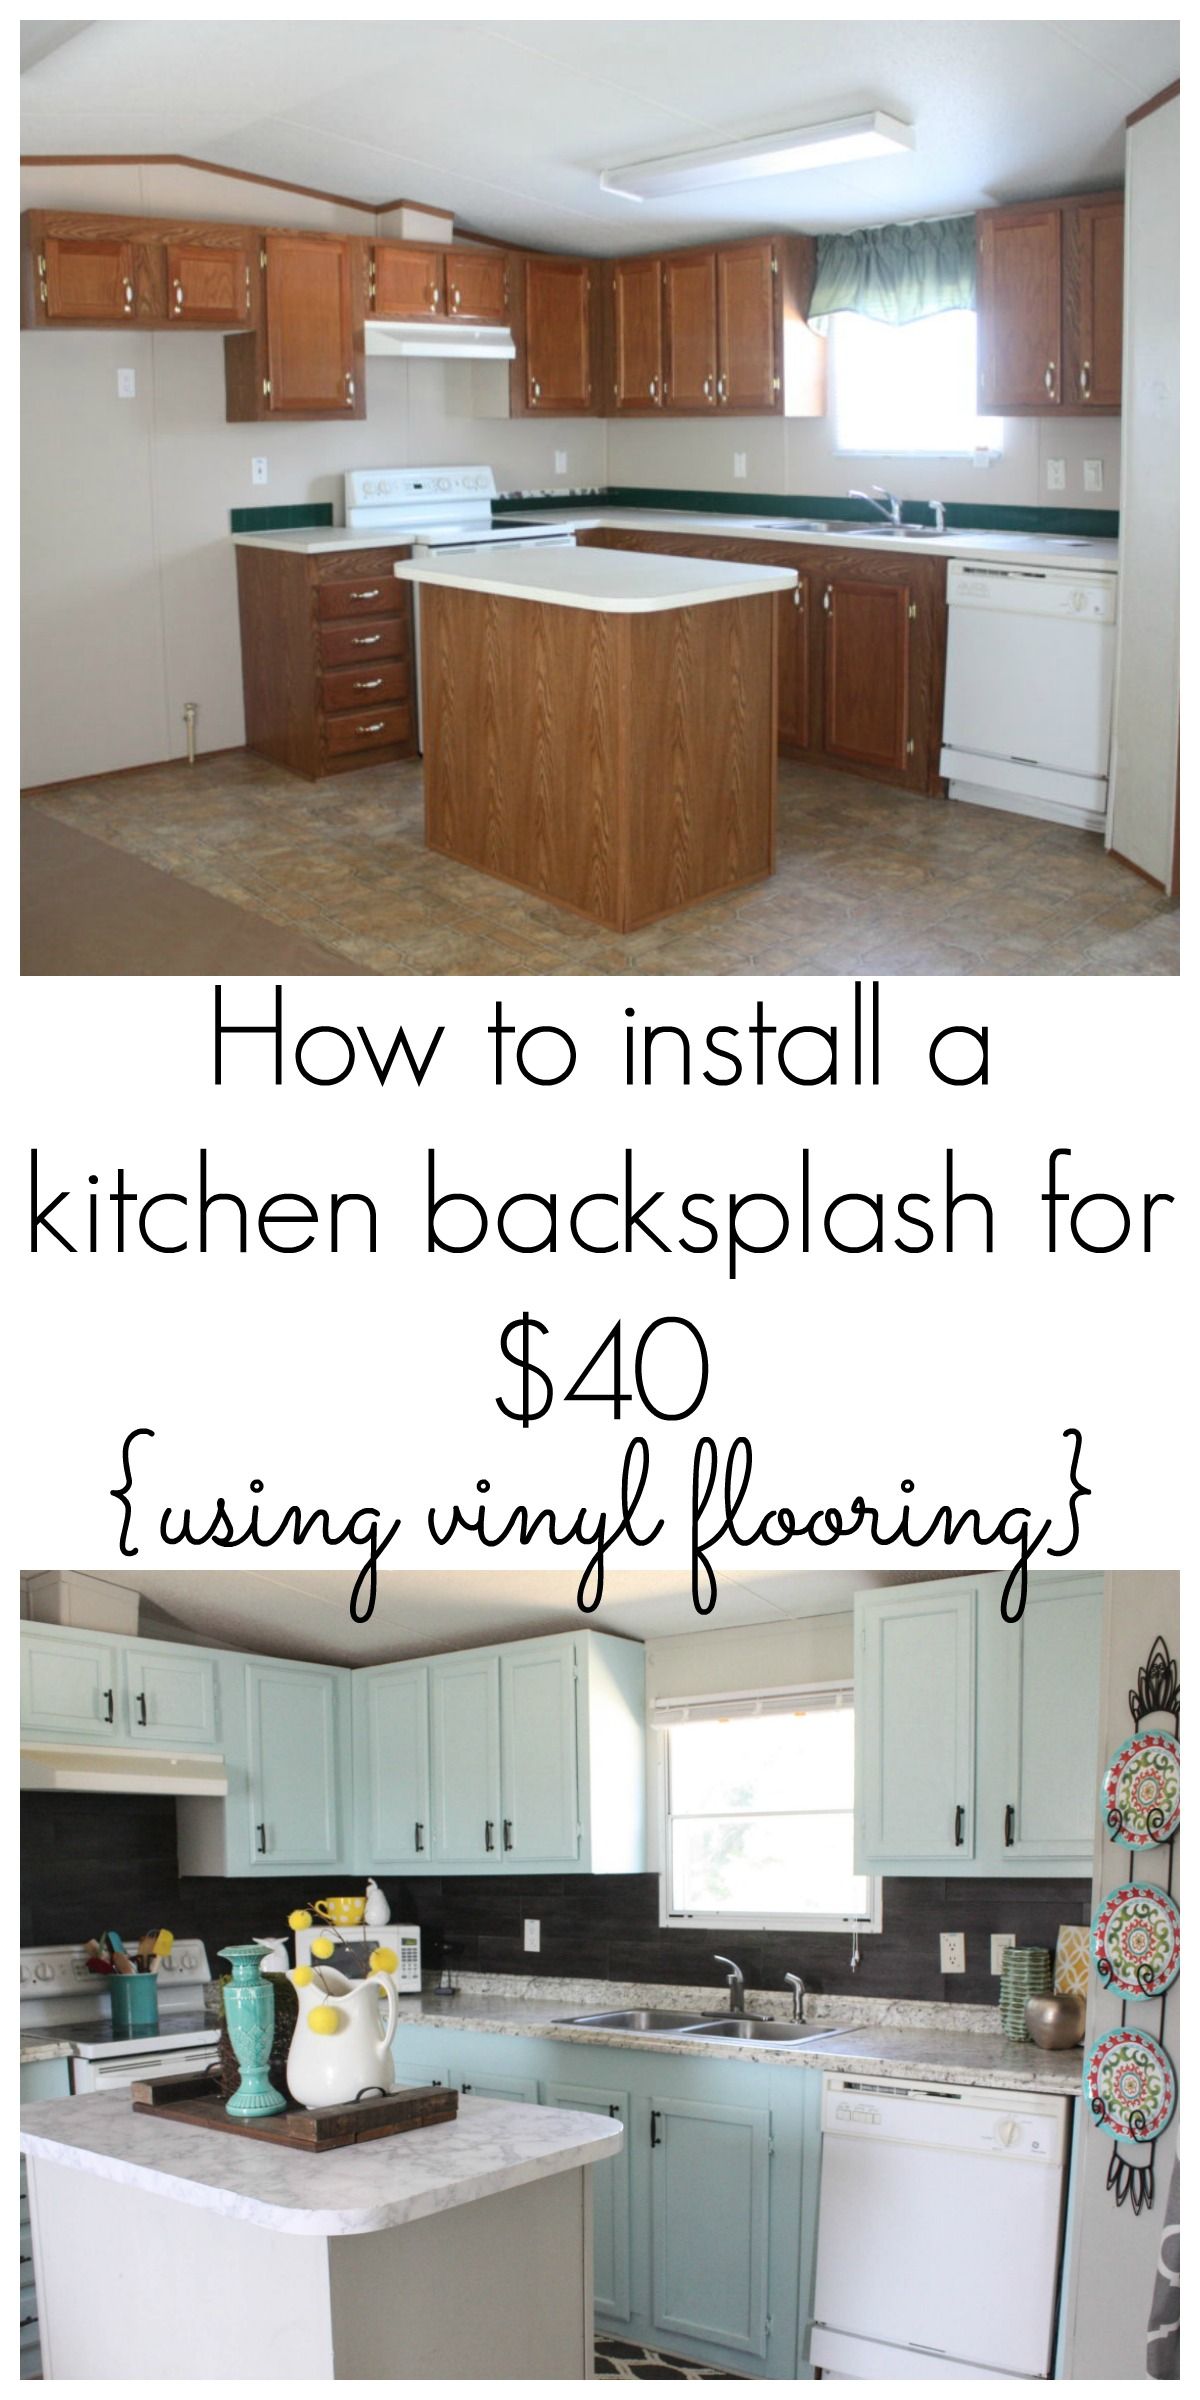 If You Are Looking For A And Gorgeous Backsplash But Have Budget